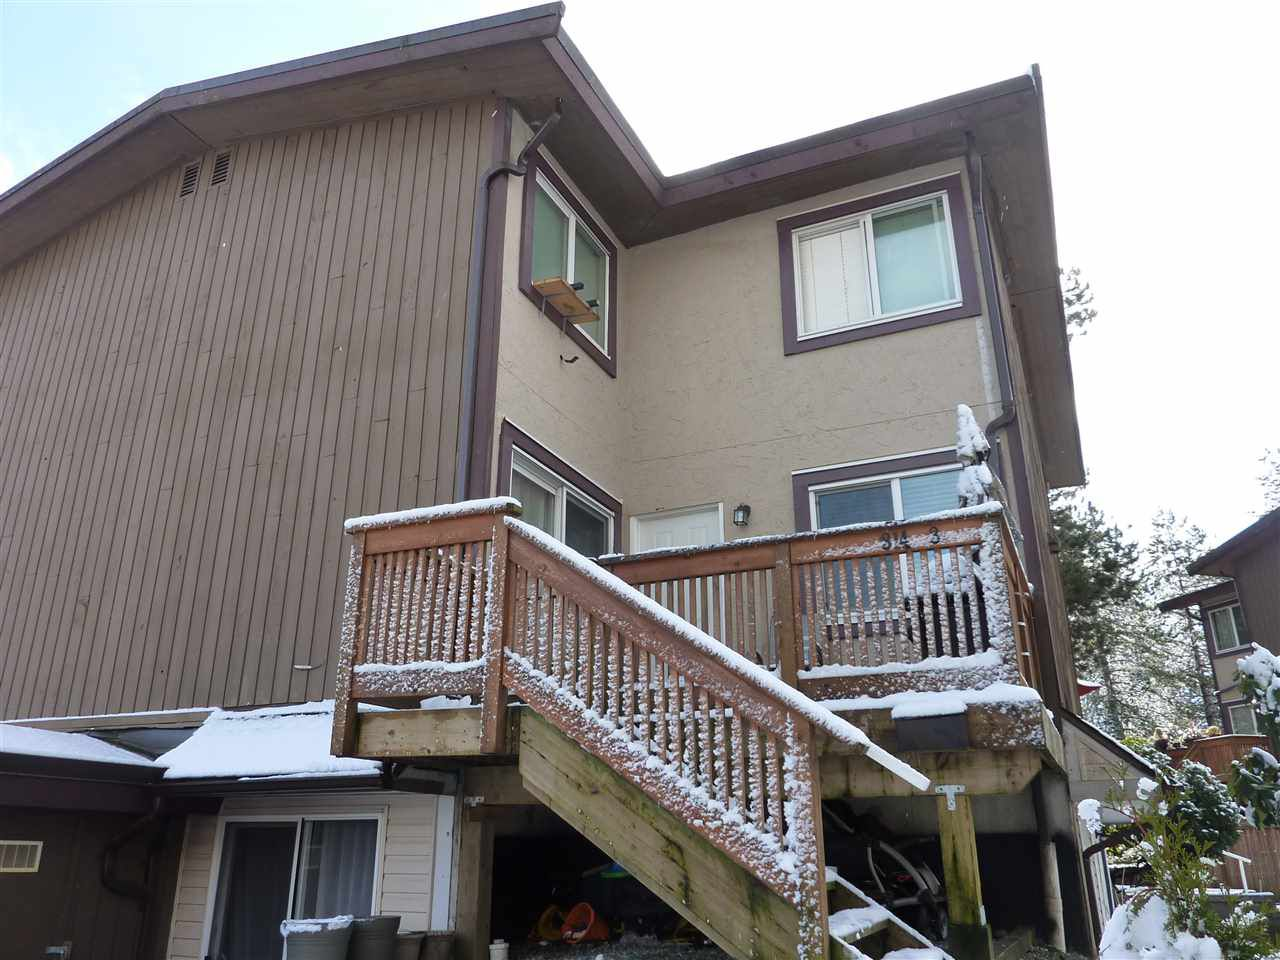 Main Photo: 3 314 HIGHLAND WAY in Port Moody: North Shore Pt Moody Townhouse for sale : MLS®# R2240983